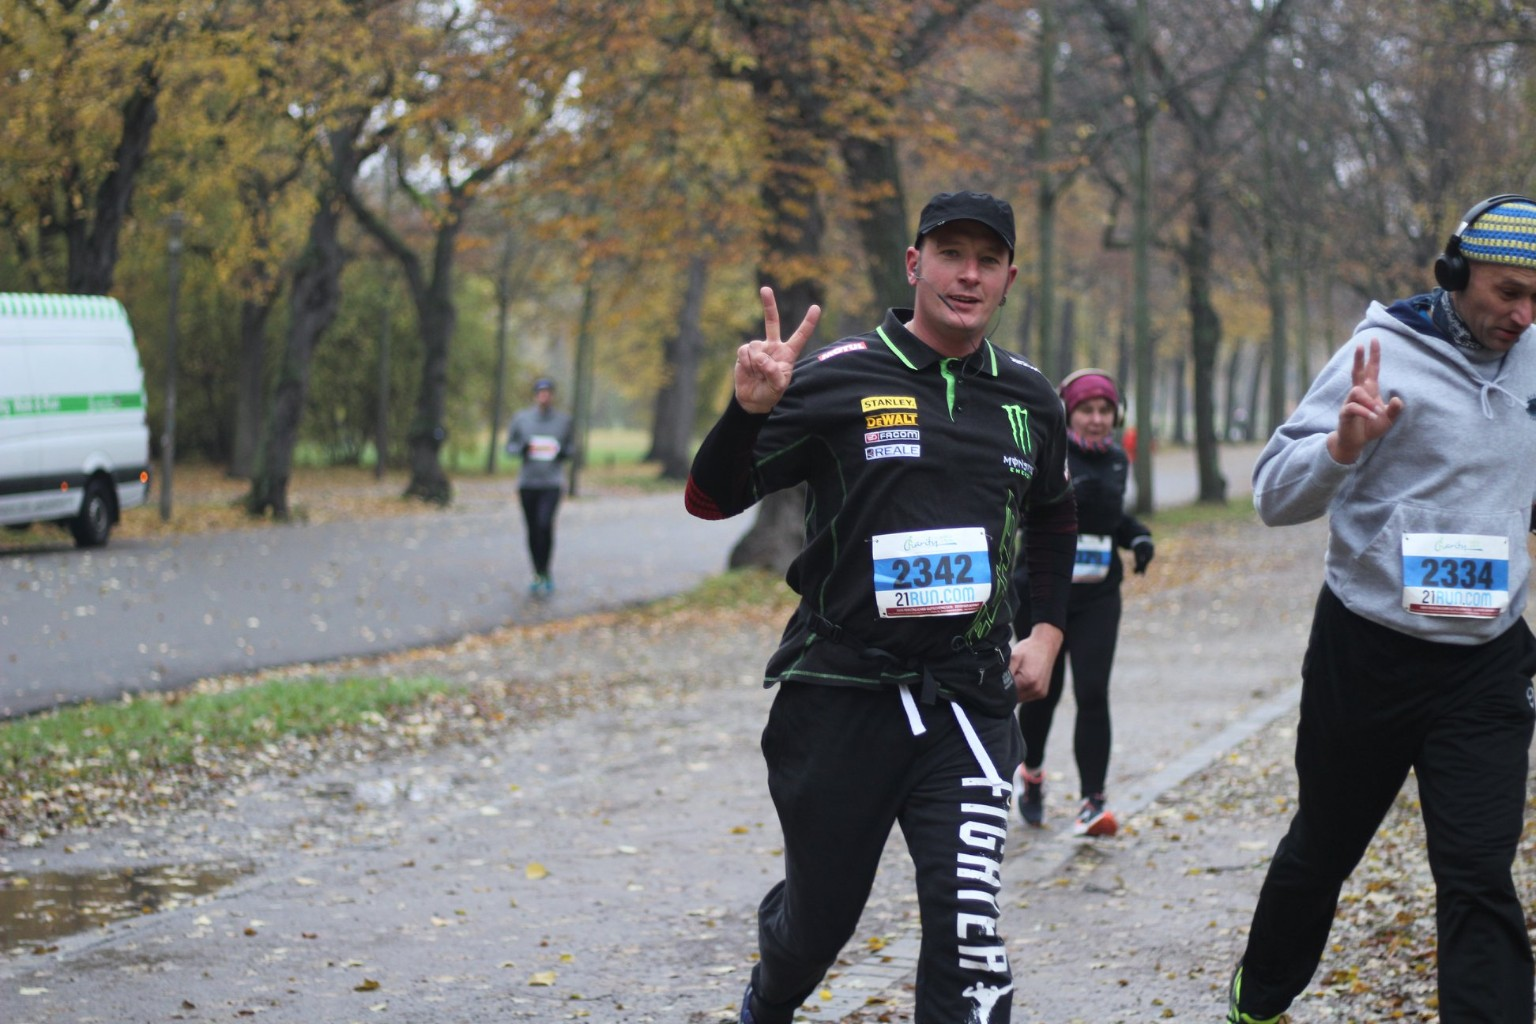 /d/evt/CharityWalkRunBerlinTempelhoferFeldBerlin/1588495658476.jpg